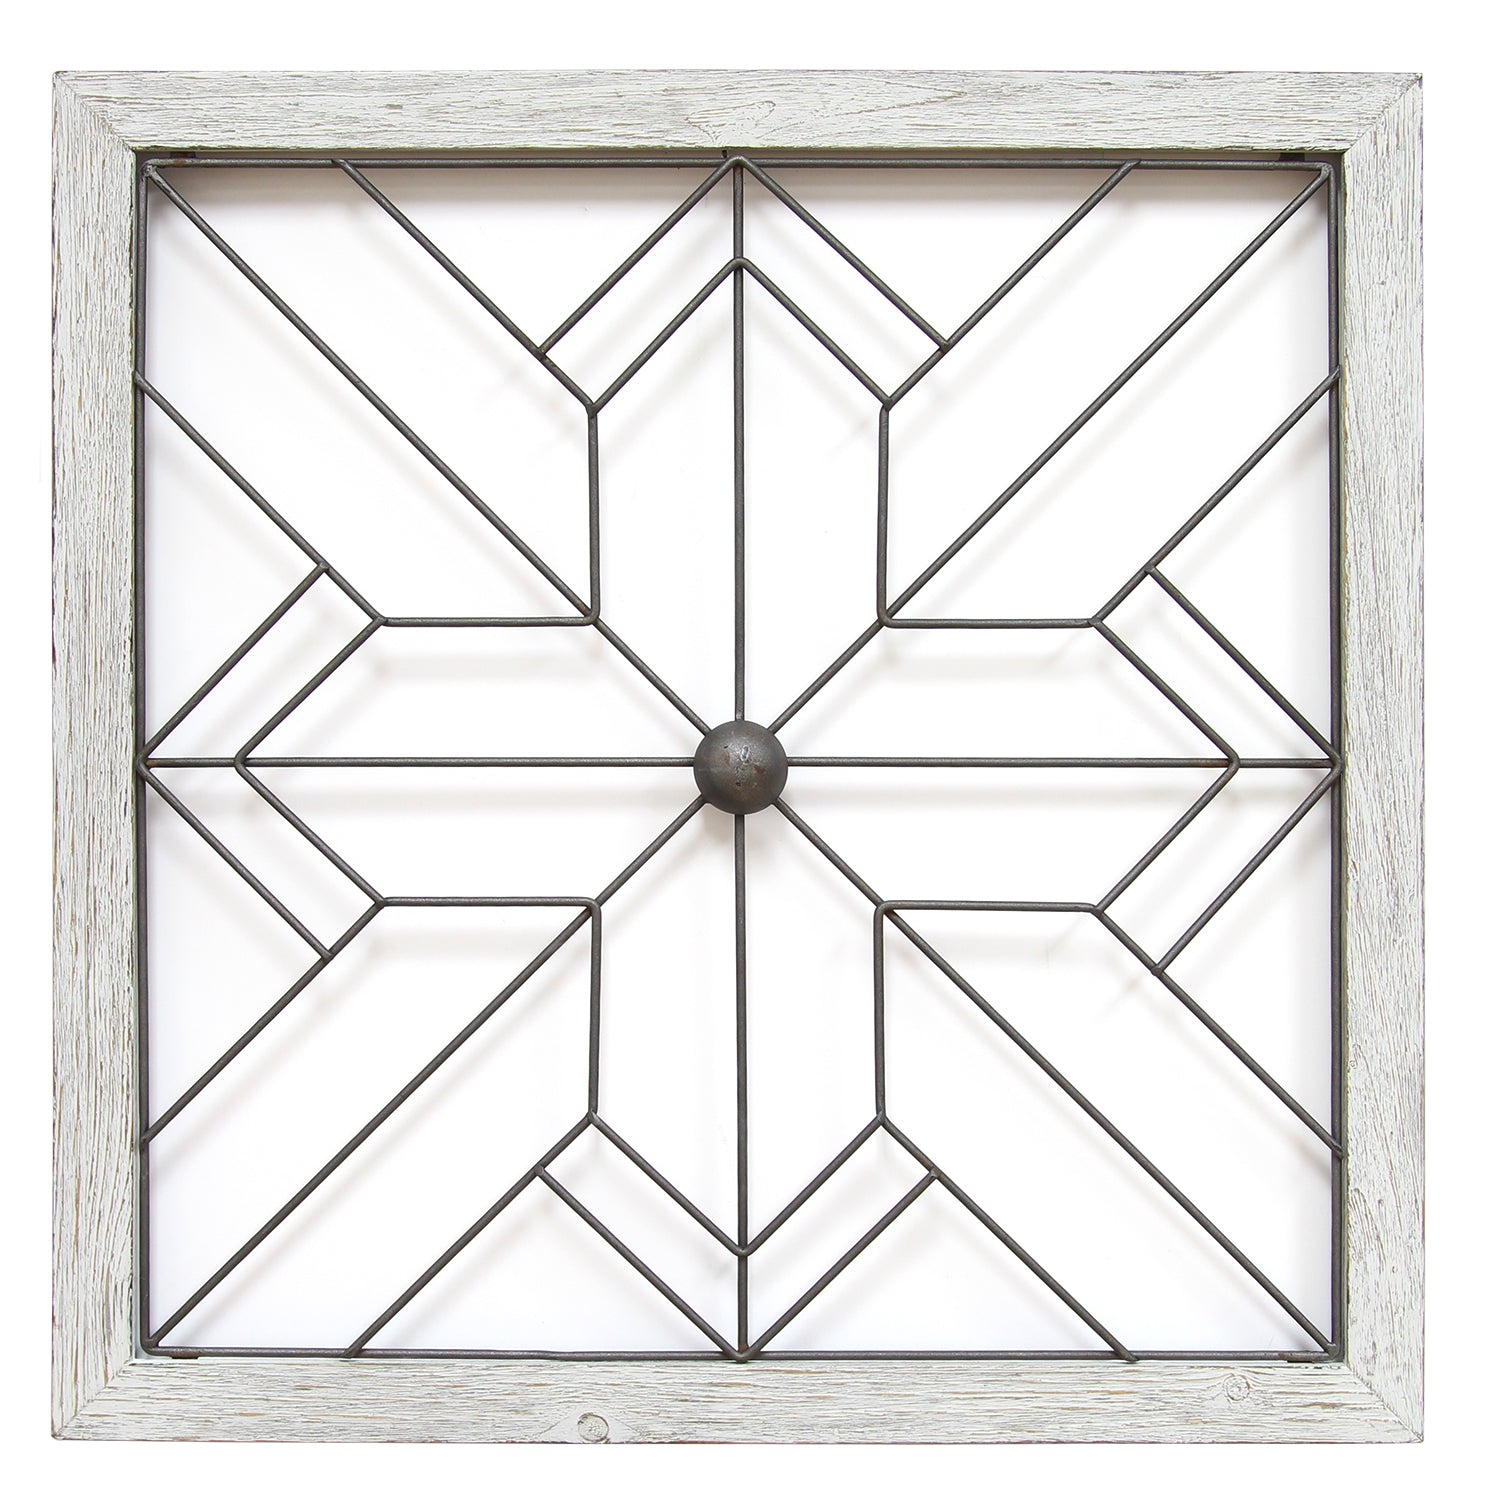 Square Metal And Wood Art Deco Wall Decor